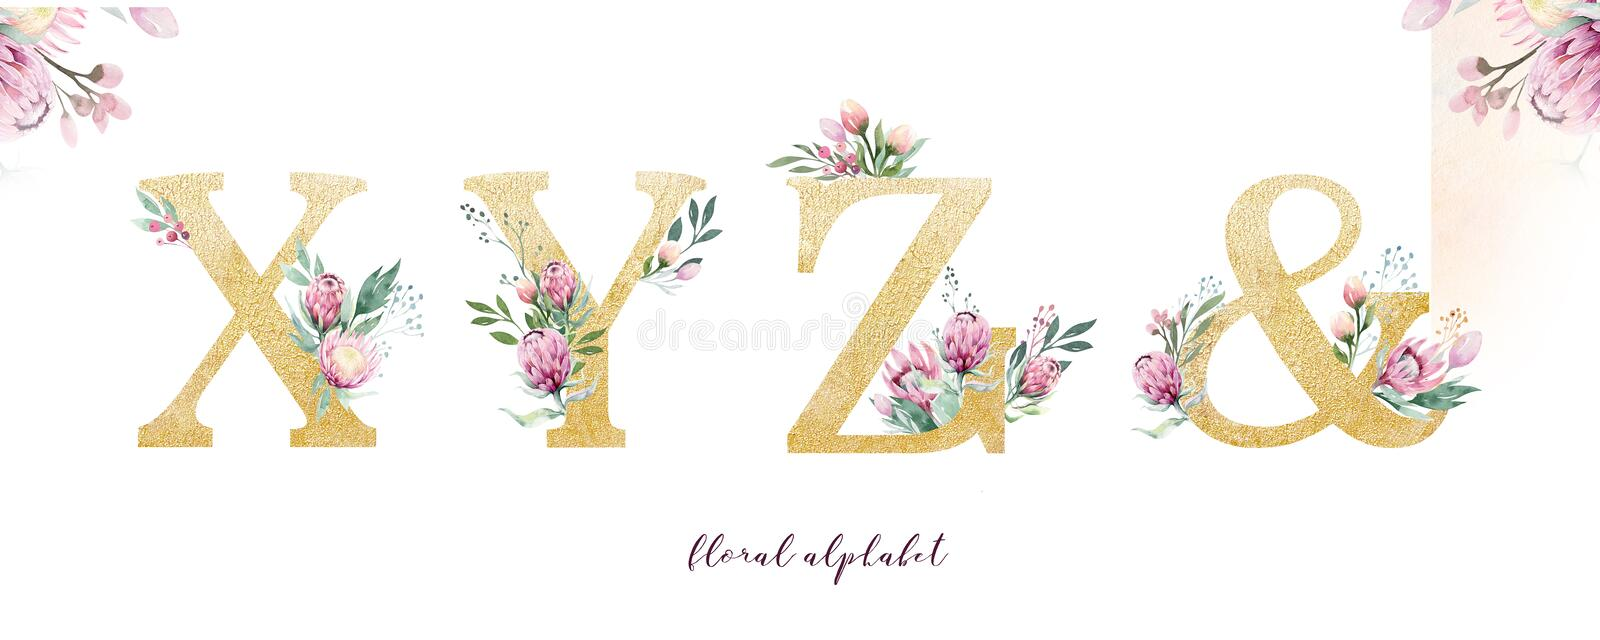 Gold glitter letter alphabet. Isolated Golden alphabetic fonts and numbers on white background. Floral wedding font text royalty free stock photo